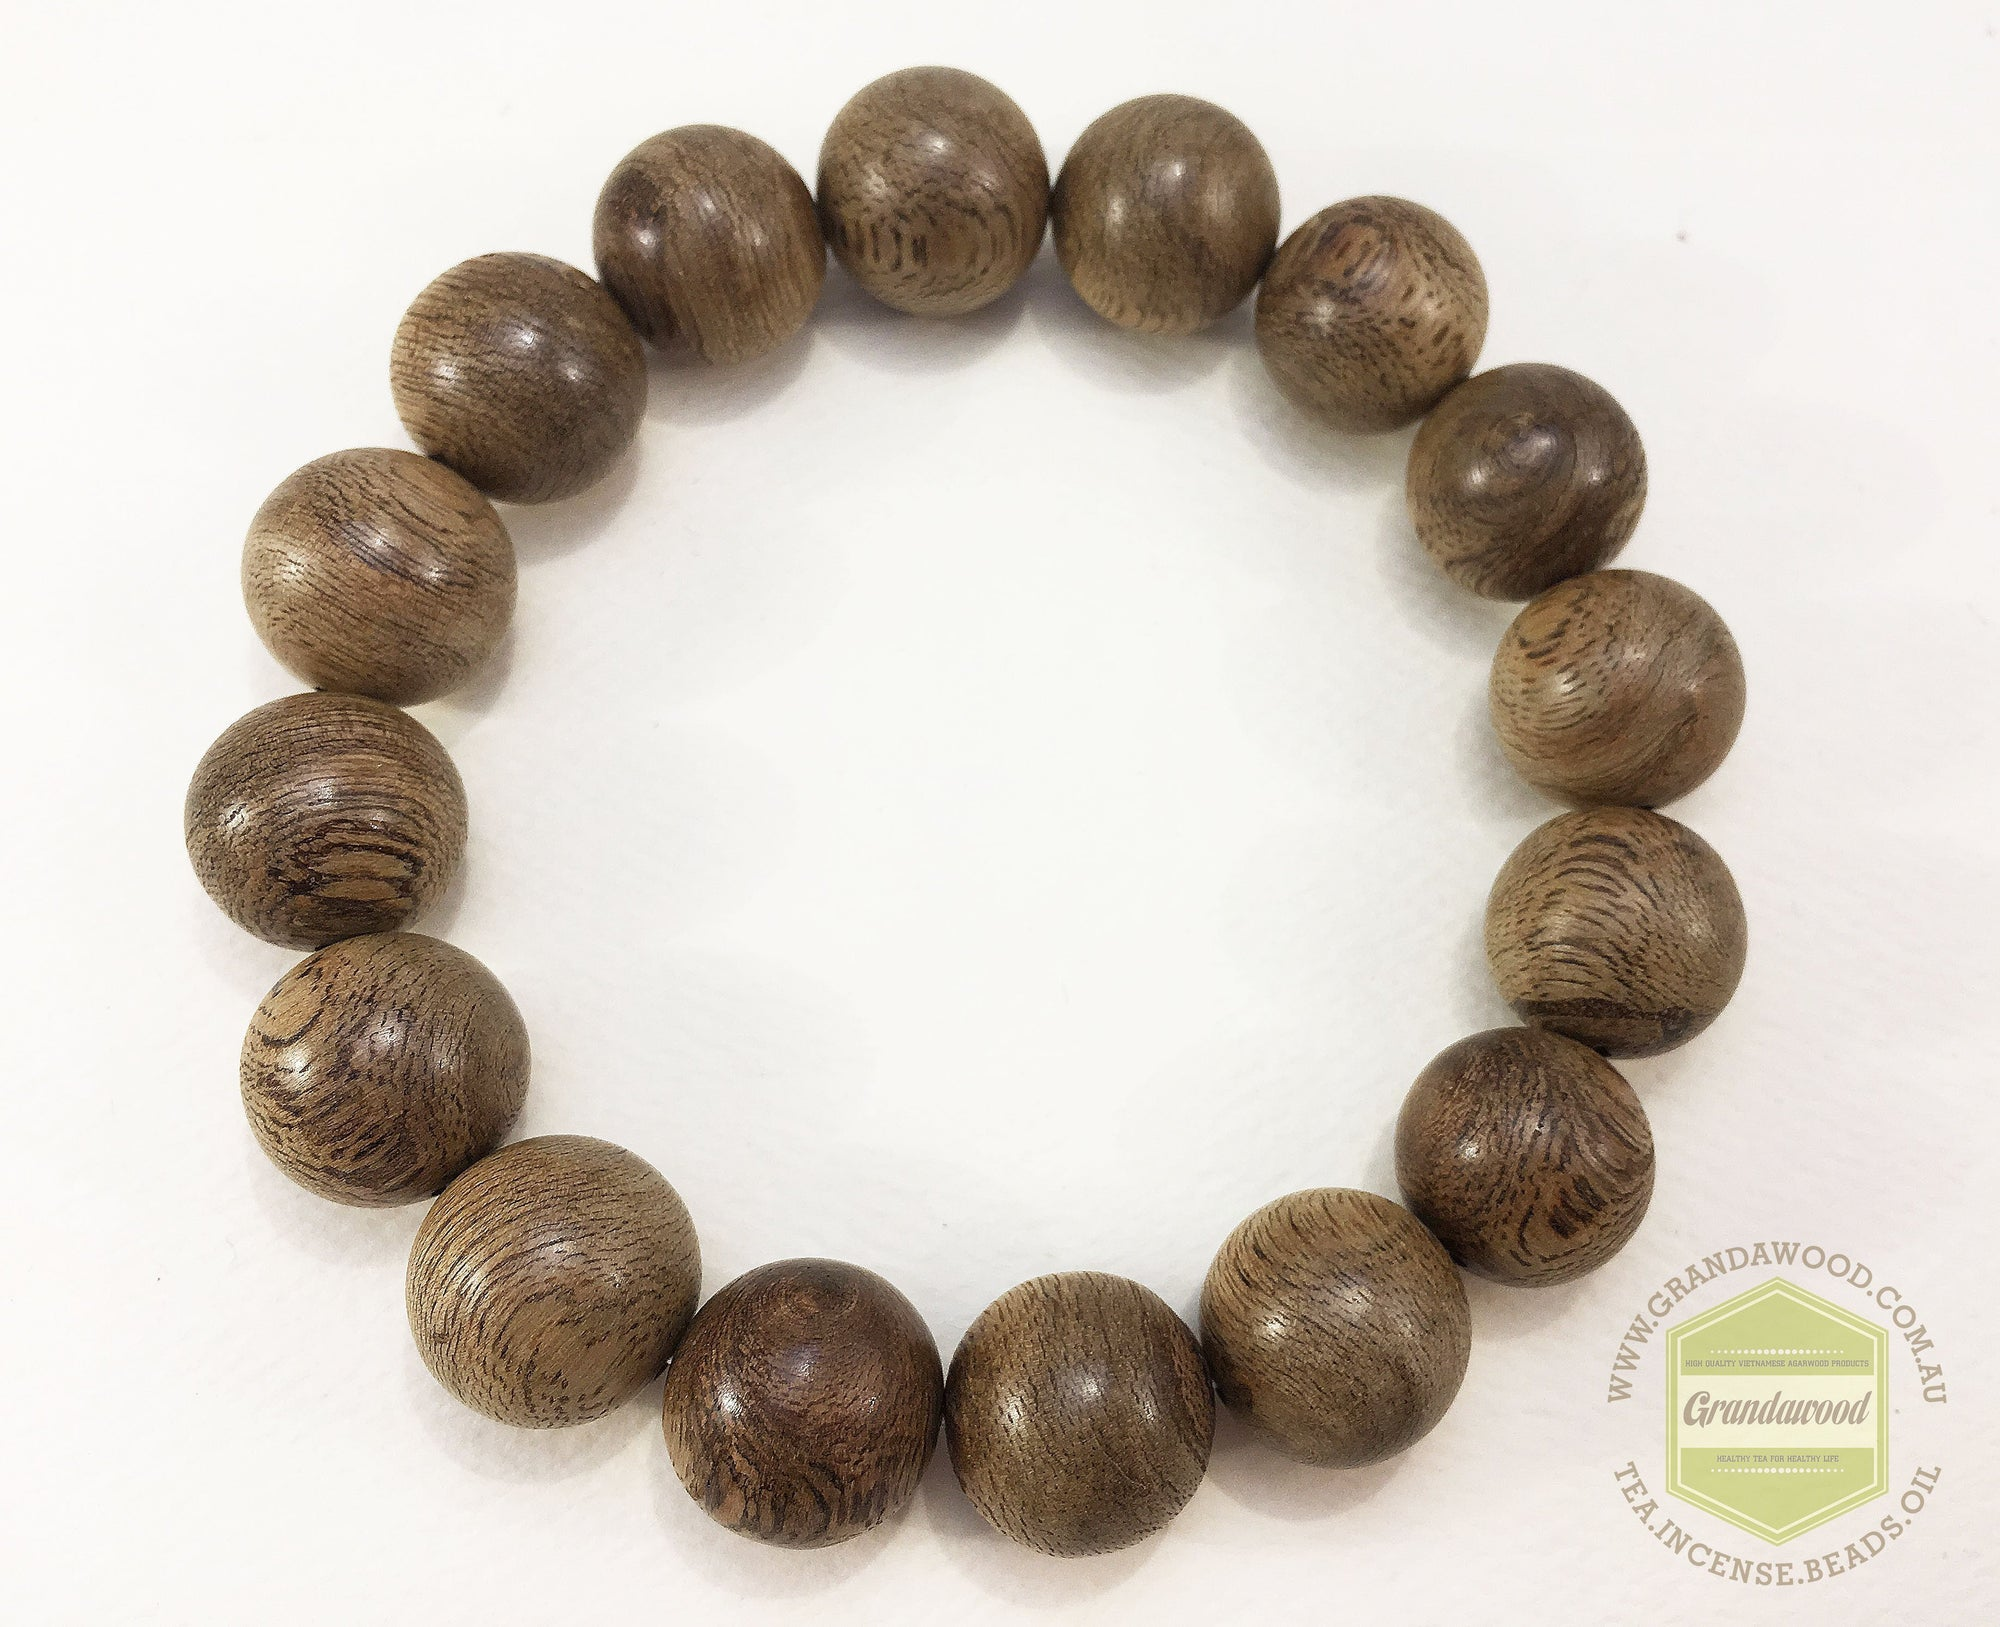 Beads *New*  East Kalimantan Wild Agarwood Bracelet 14mm 16.5g